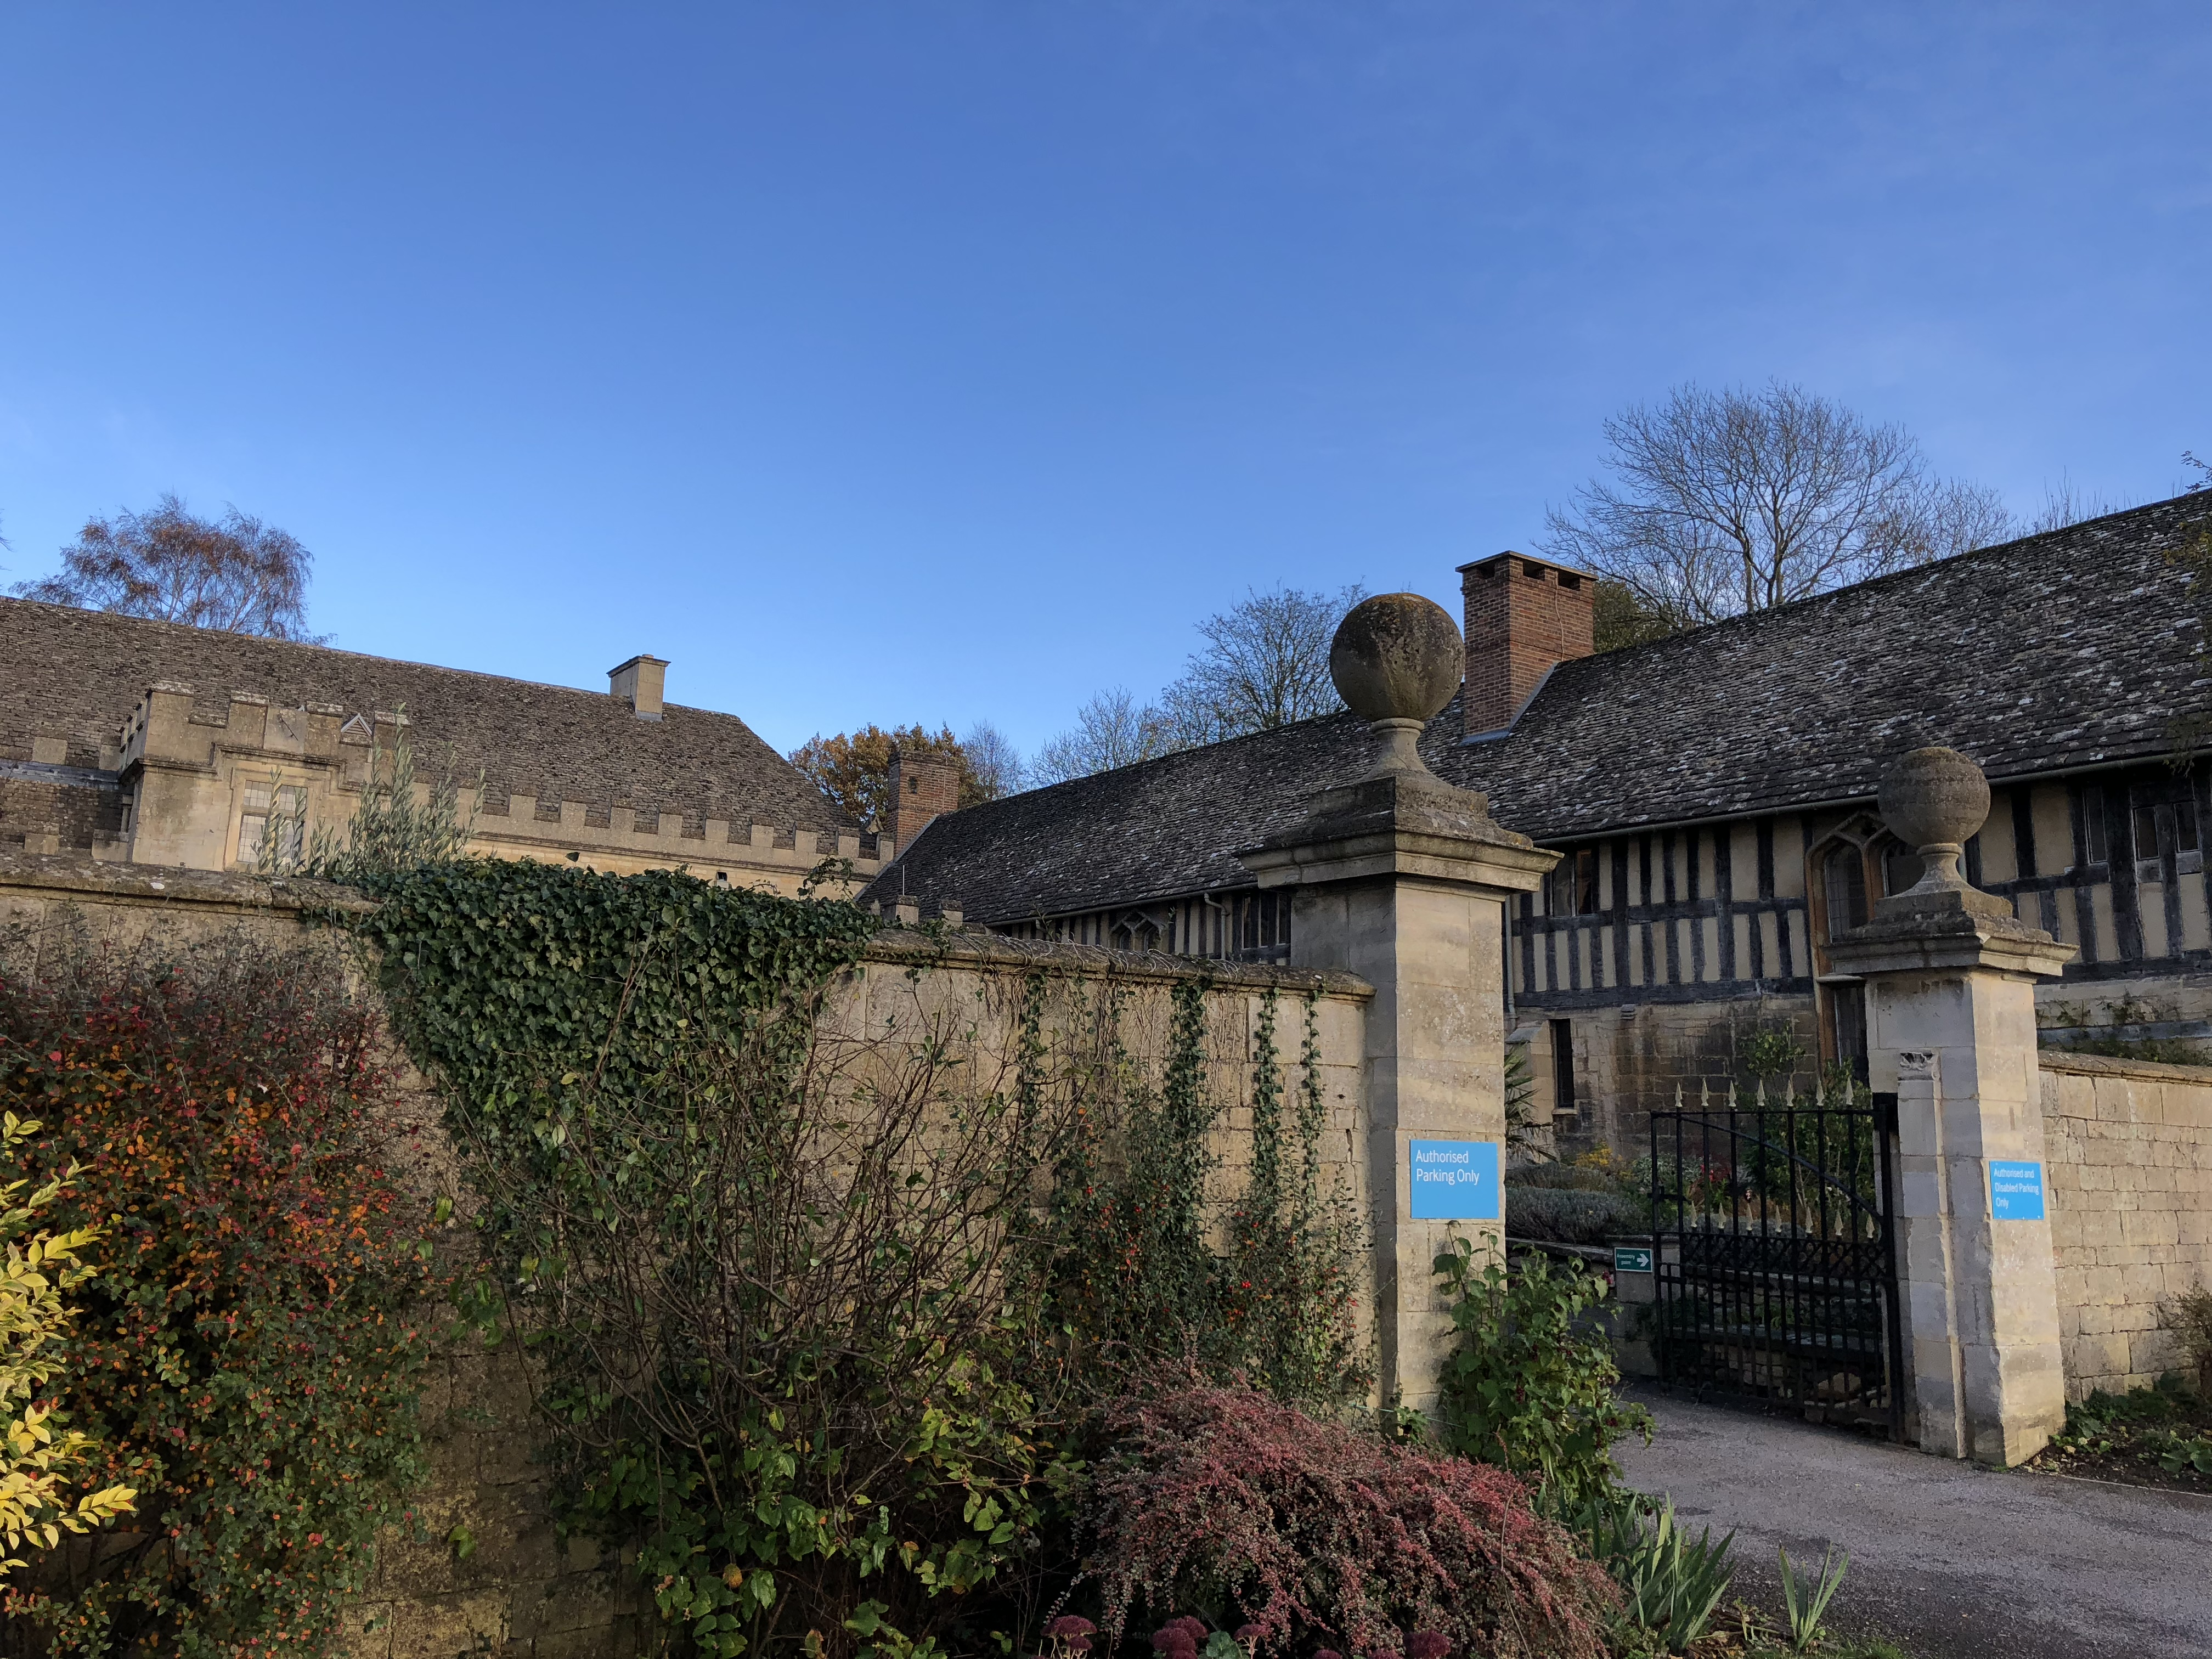 A view from the front of the Leckhampton Court Hospice with the gorgeous building and a very blue sky above.